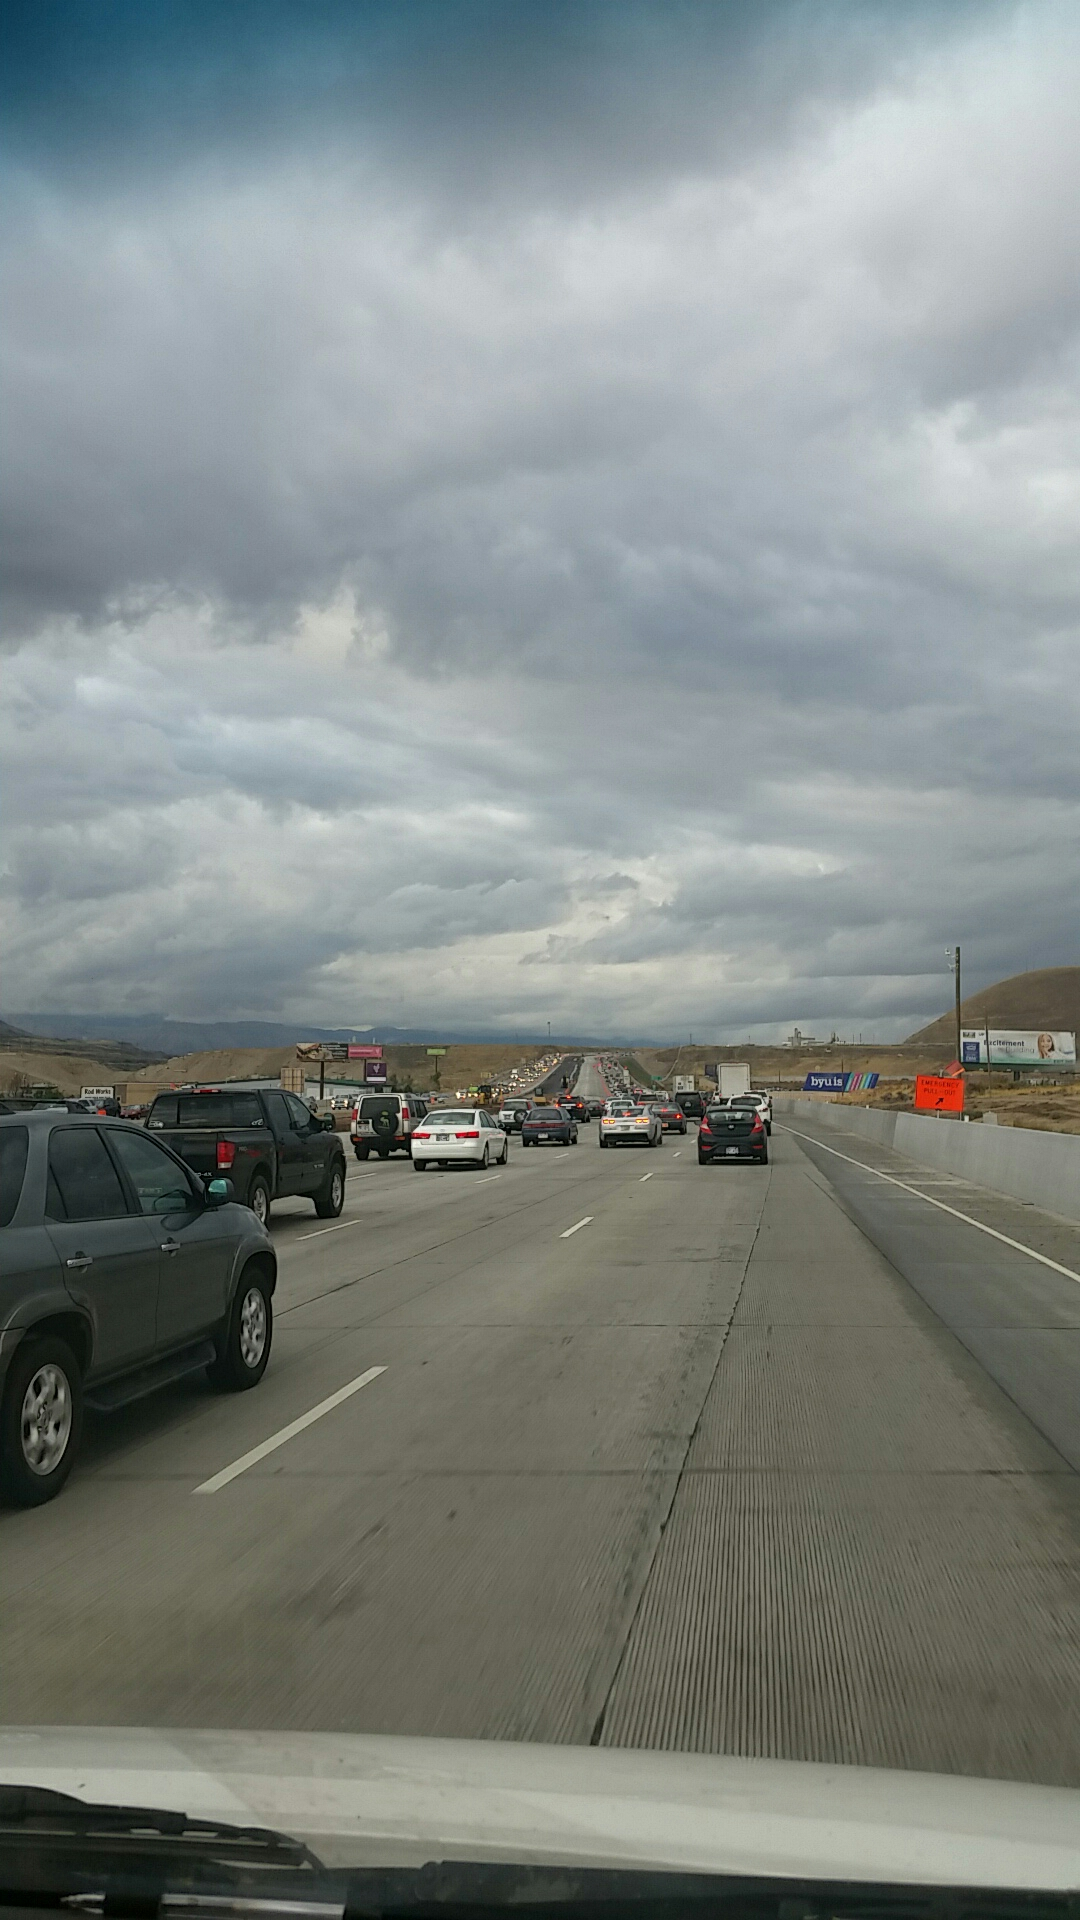 Lehi, UT - Heading north bound trying to mitigate the world and here we are stuck in traffic...